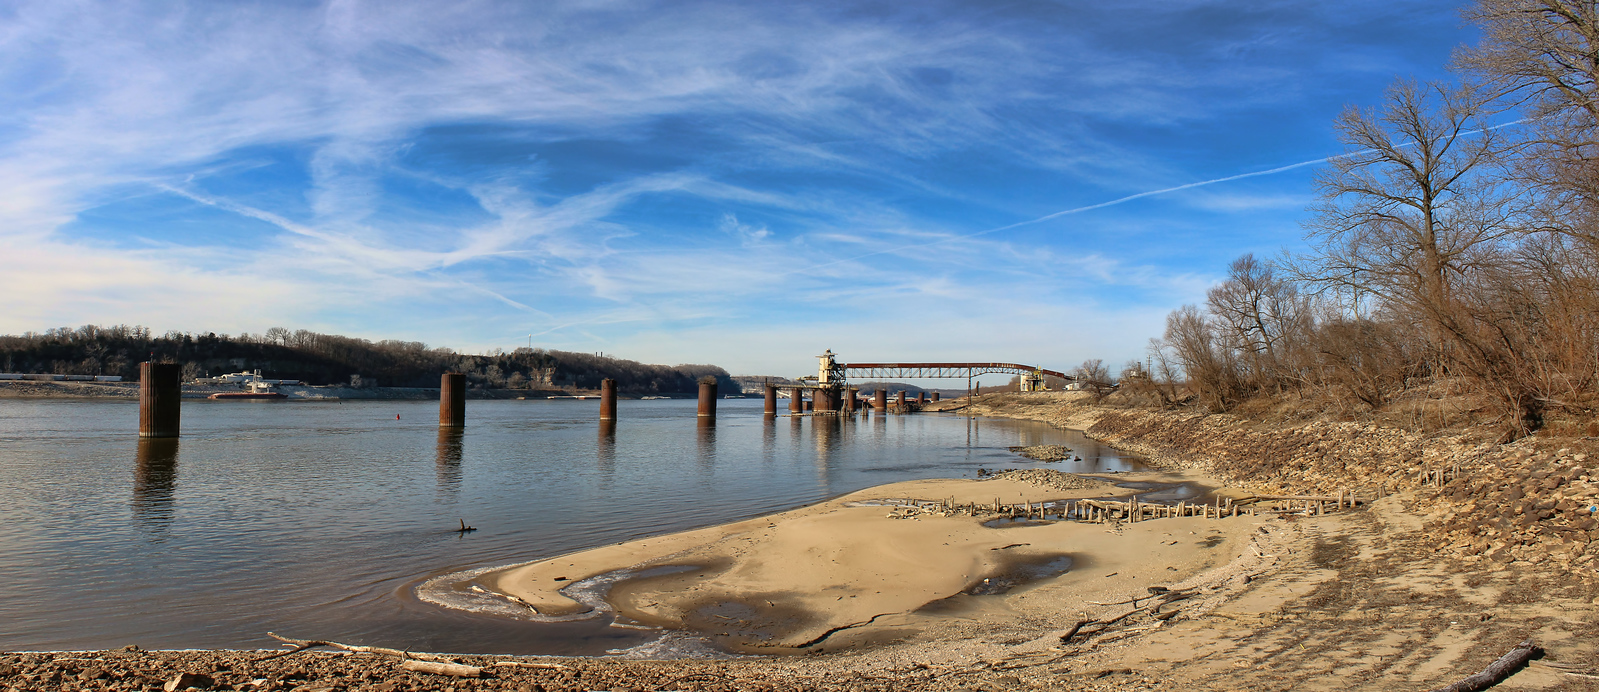 My first full day  back in St. Louis. was cold but still a beautiful day. We went to Modoc, IL to see if the eagles had arrived but came up short. I took this shot with my new wide angle lens I got for Christmas.   May you have a well and prosperous New Year. 12.31.13